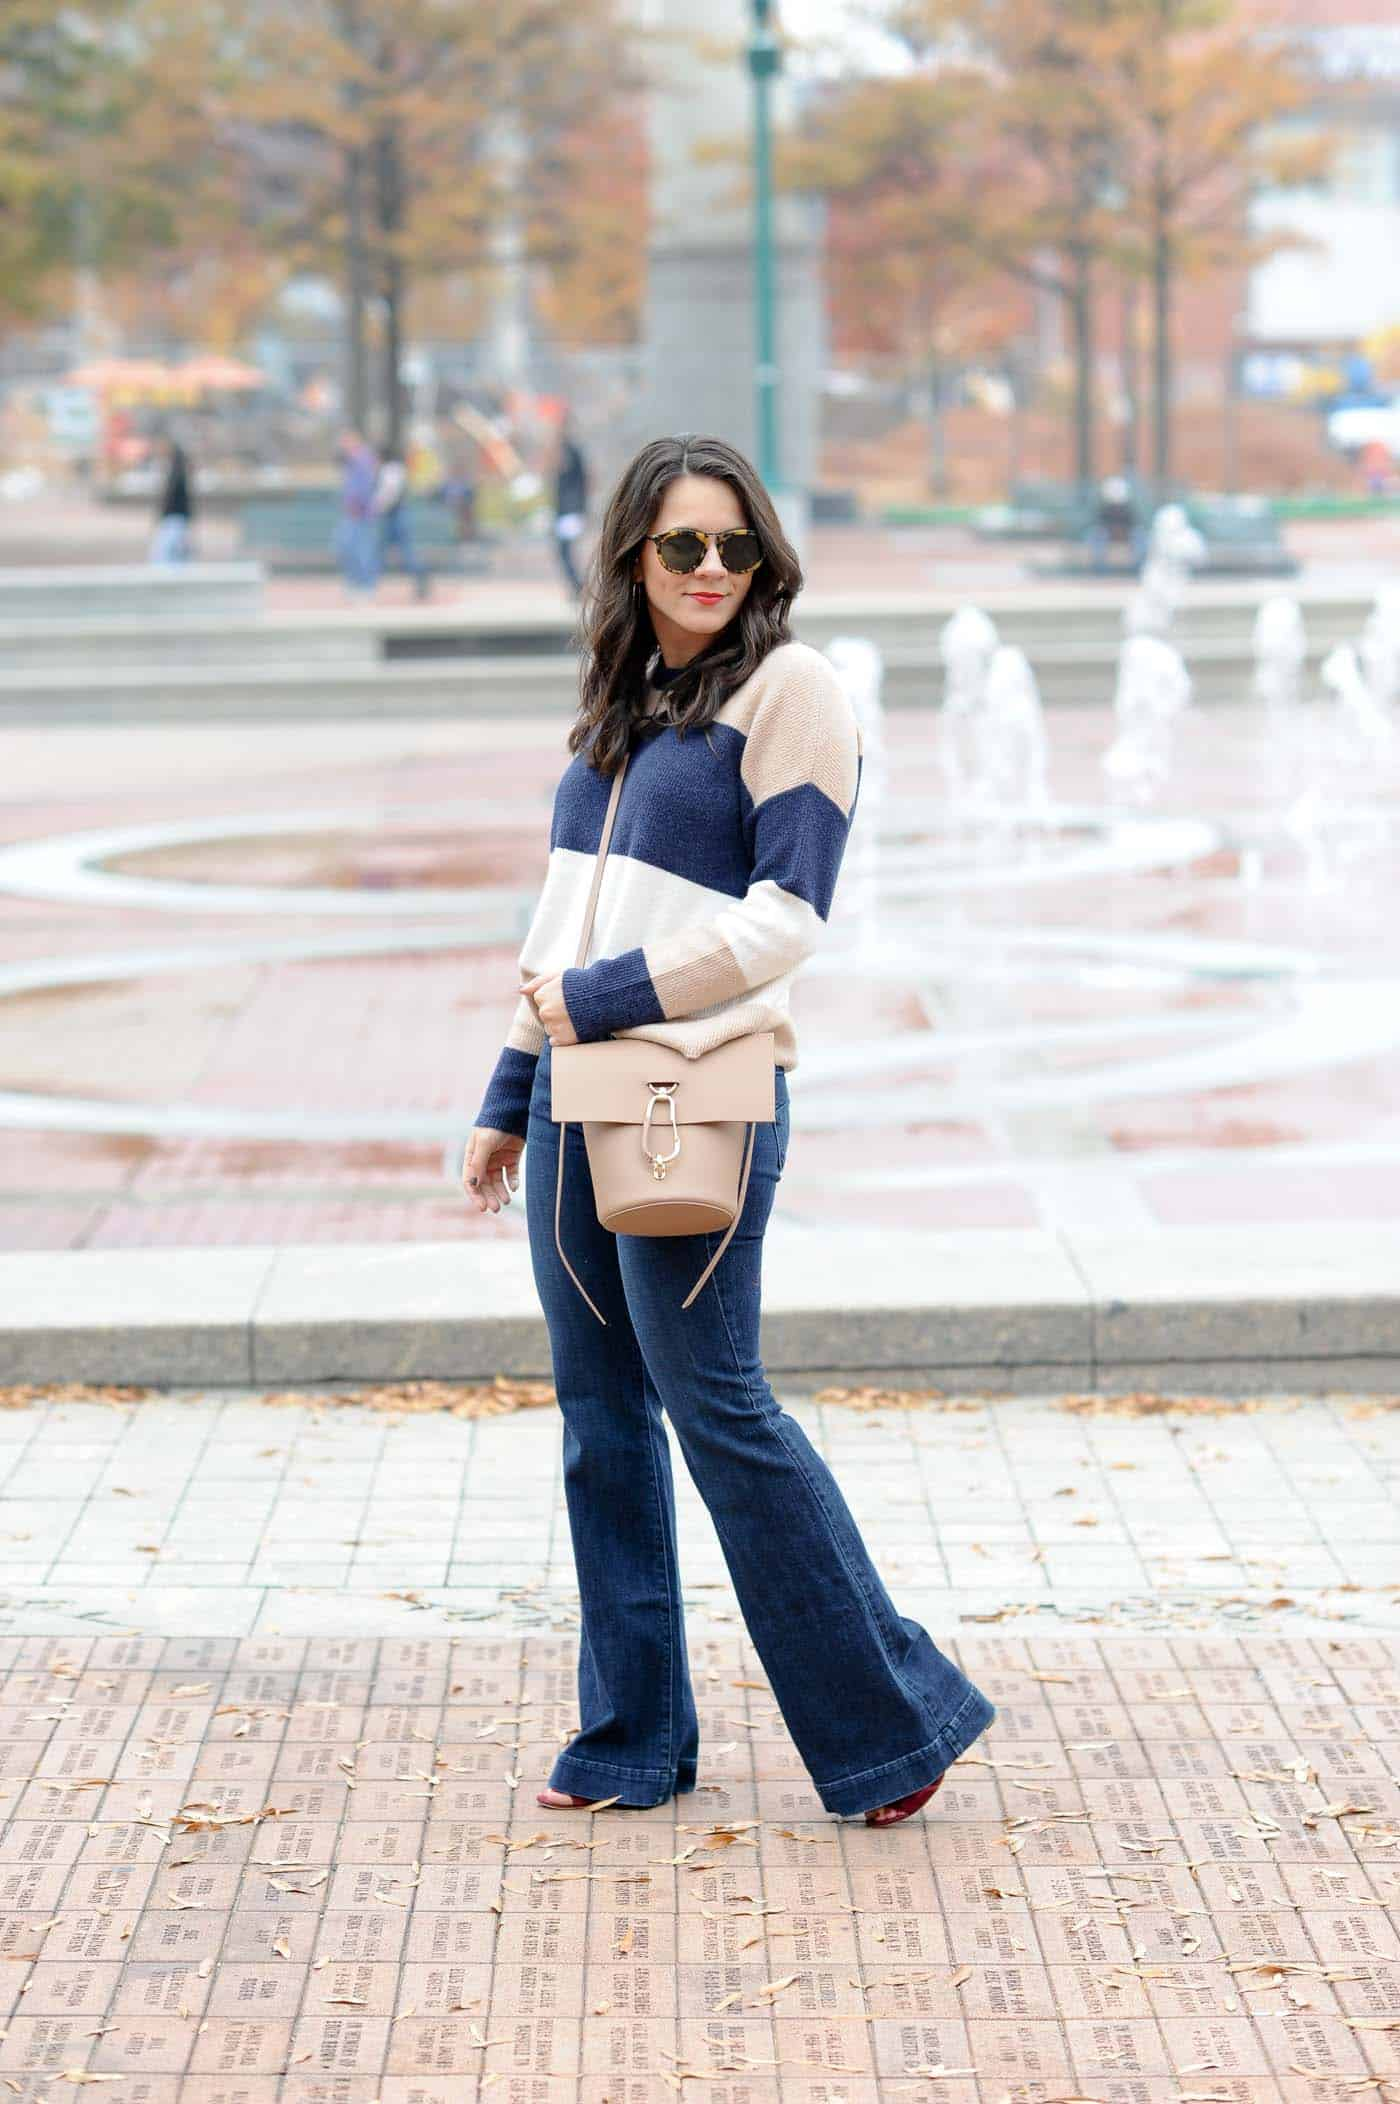 shoes for wide leg jeans, Wide leg jeans, what shoes to wear with wide leg jeans, Madewell striped sweater, fall outfits - My Style Vita @mystylevita